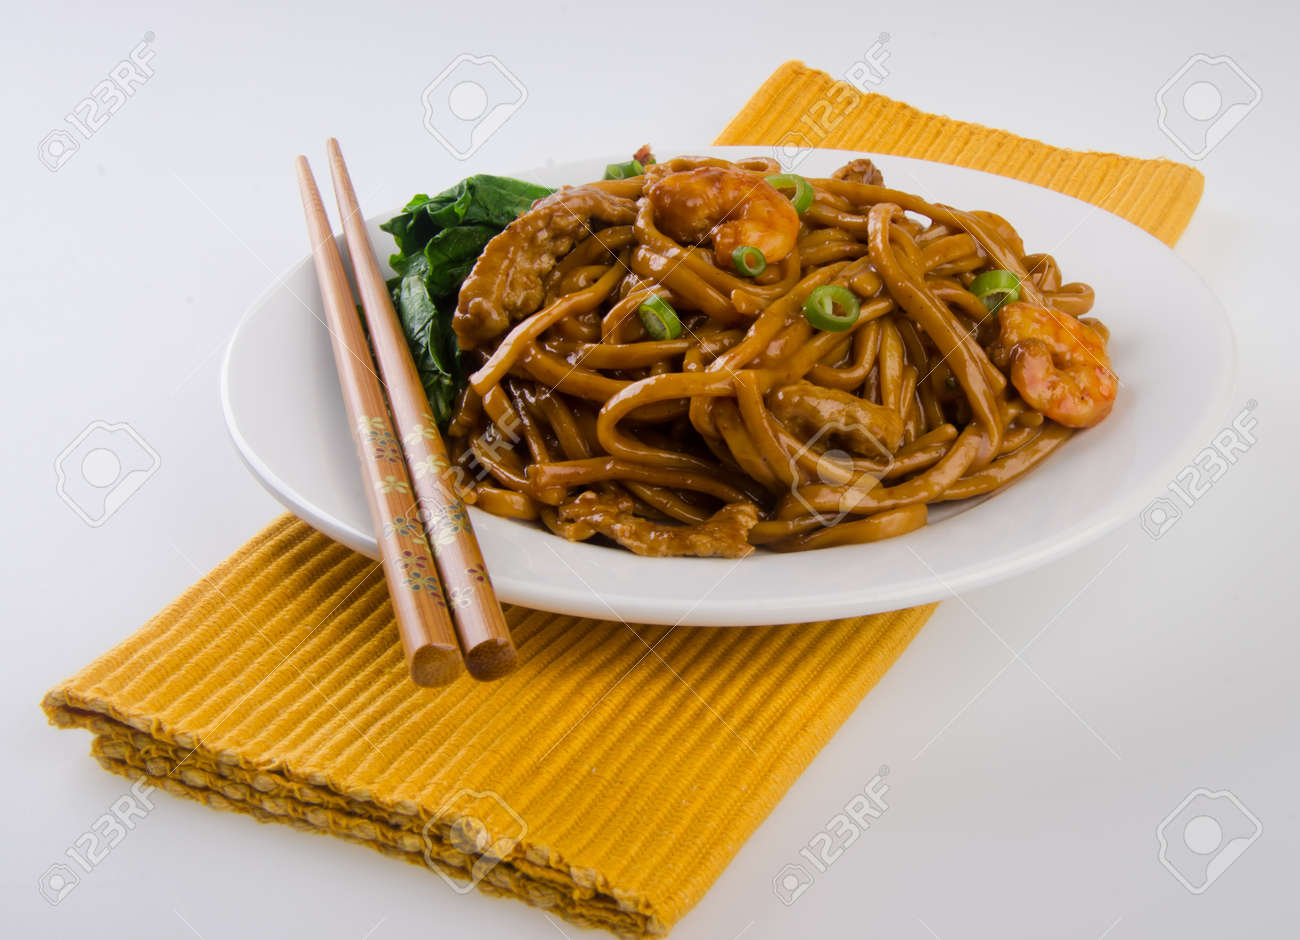 noodles  stir-fried noodles with chicken Stock Photo - 13484018